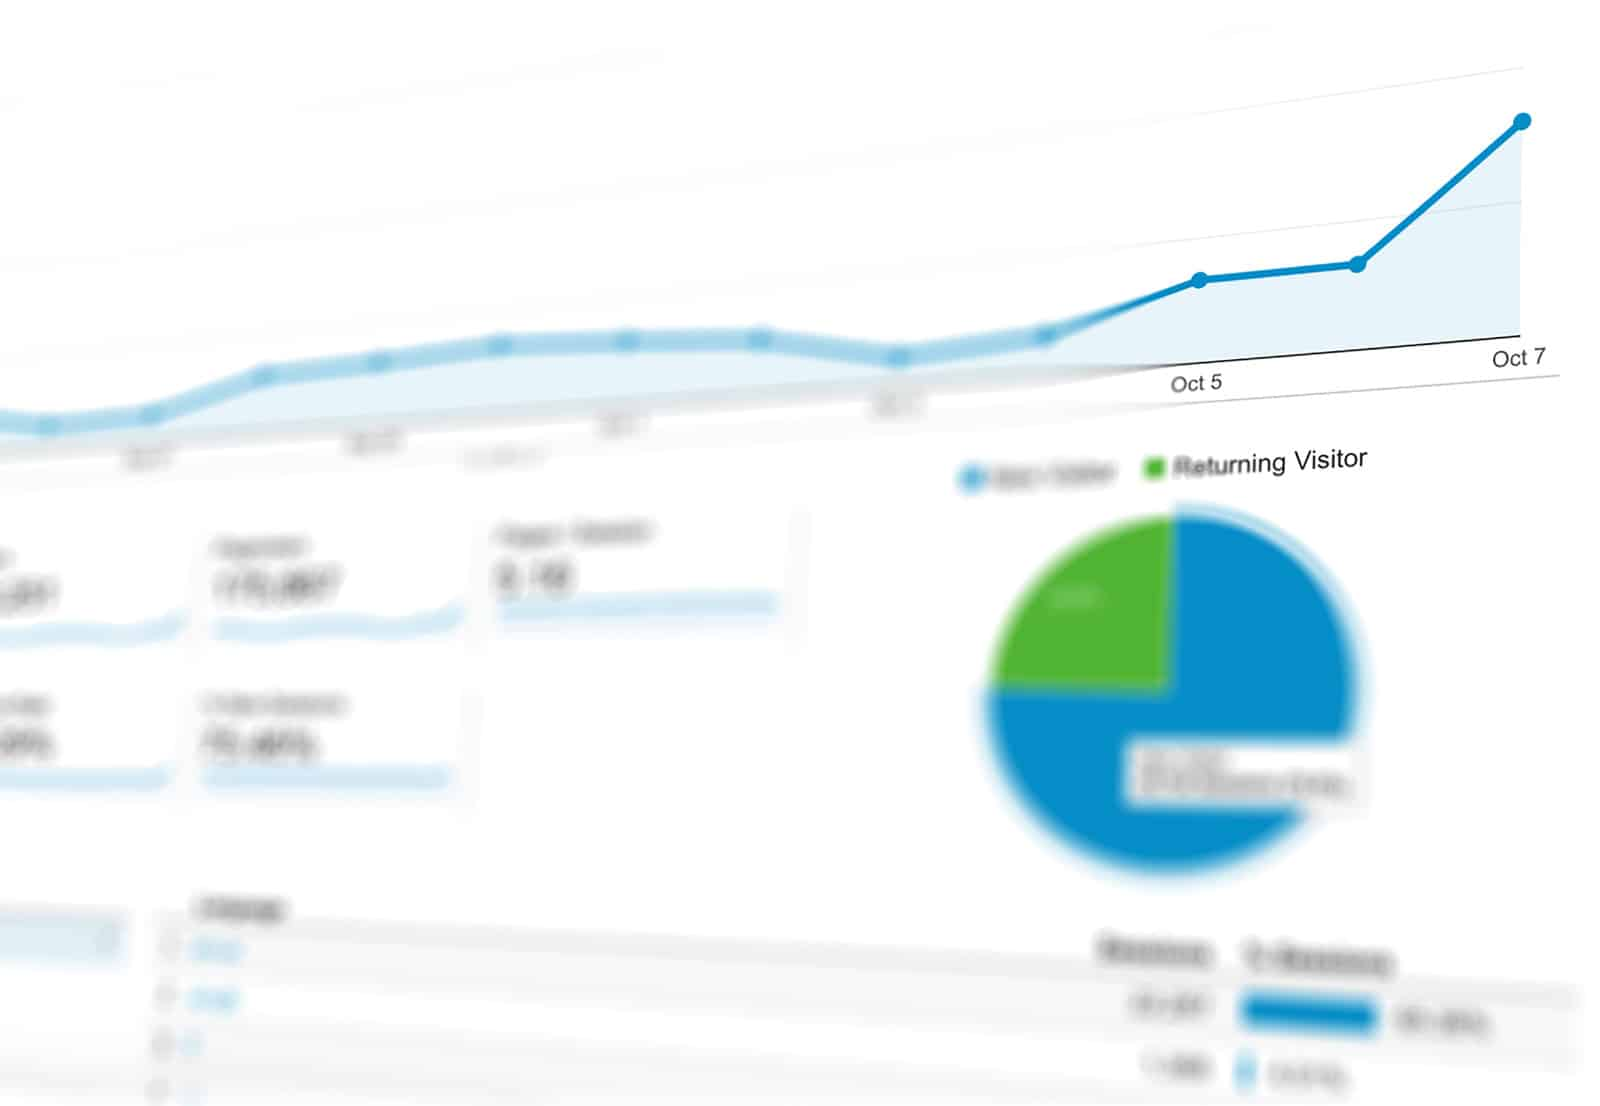 pay per click advertising is scalable and measureable